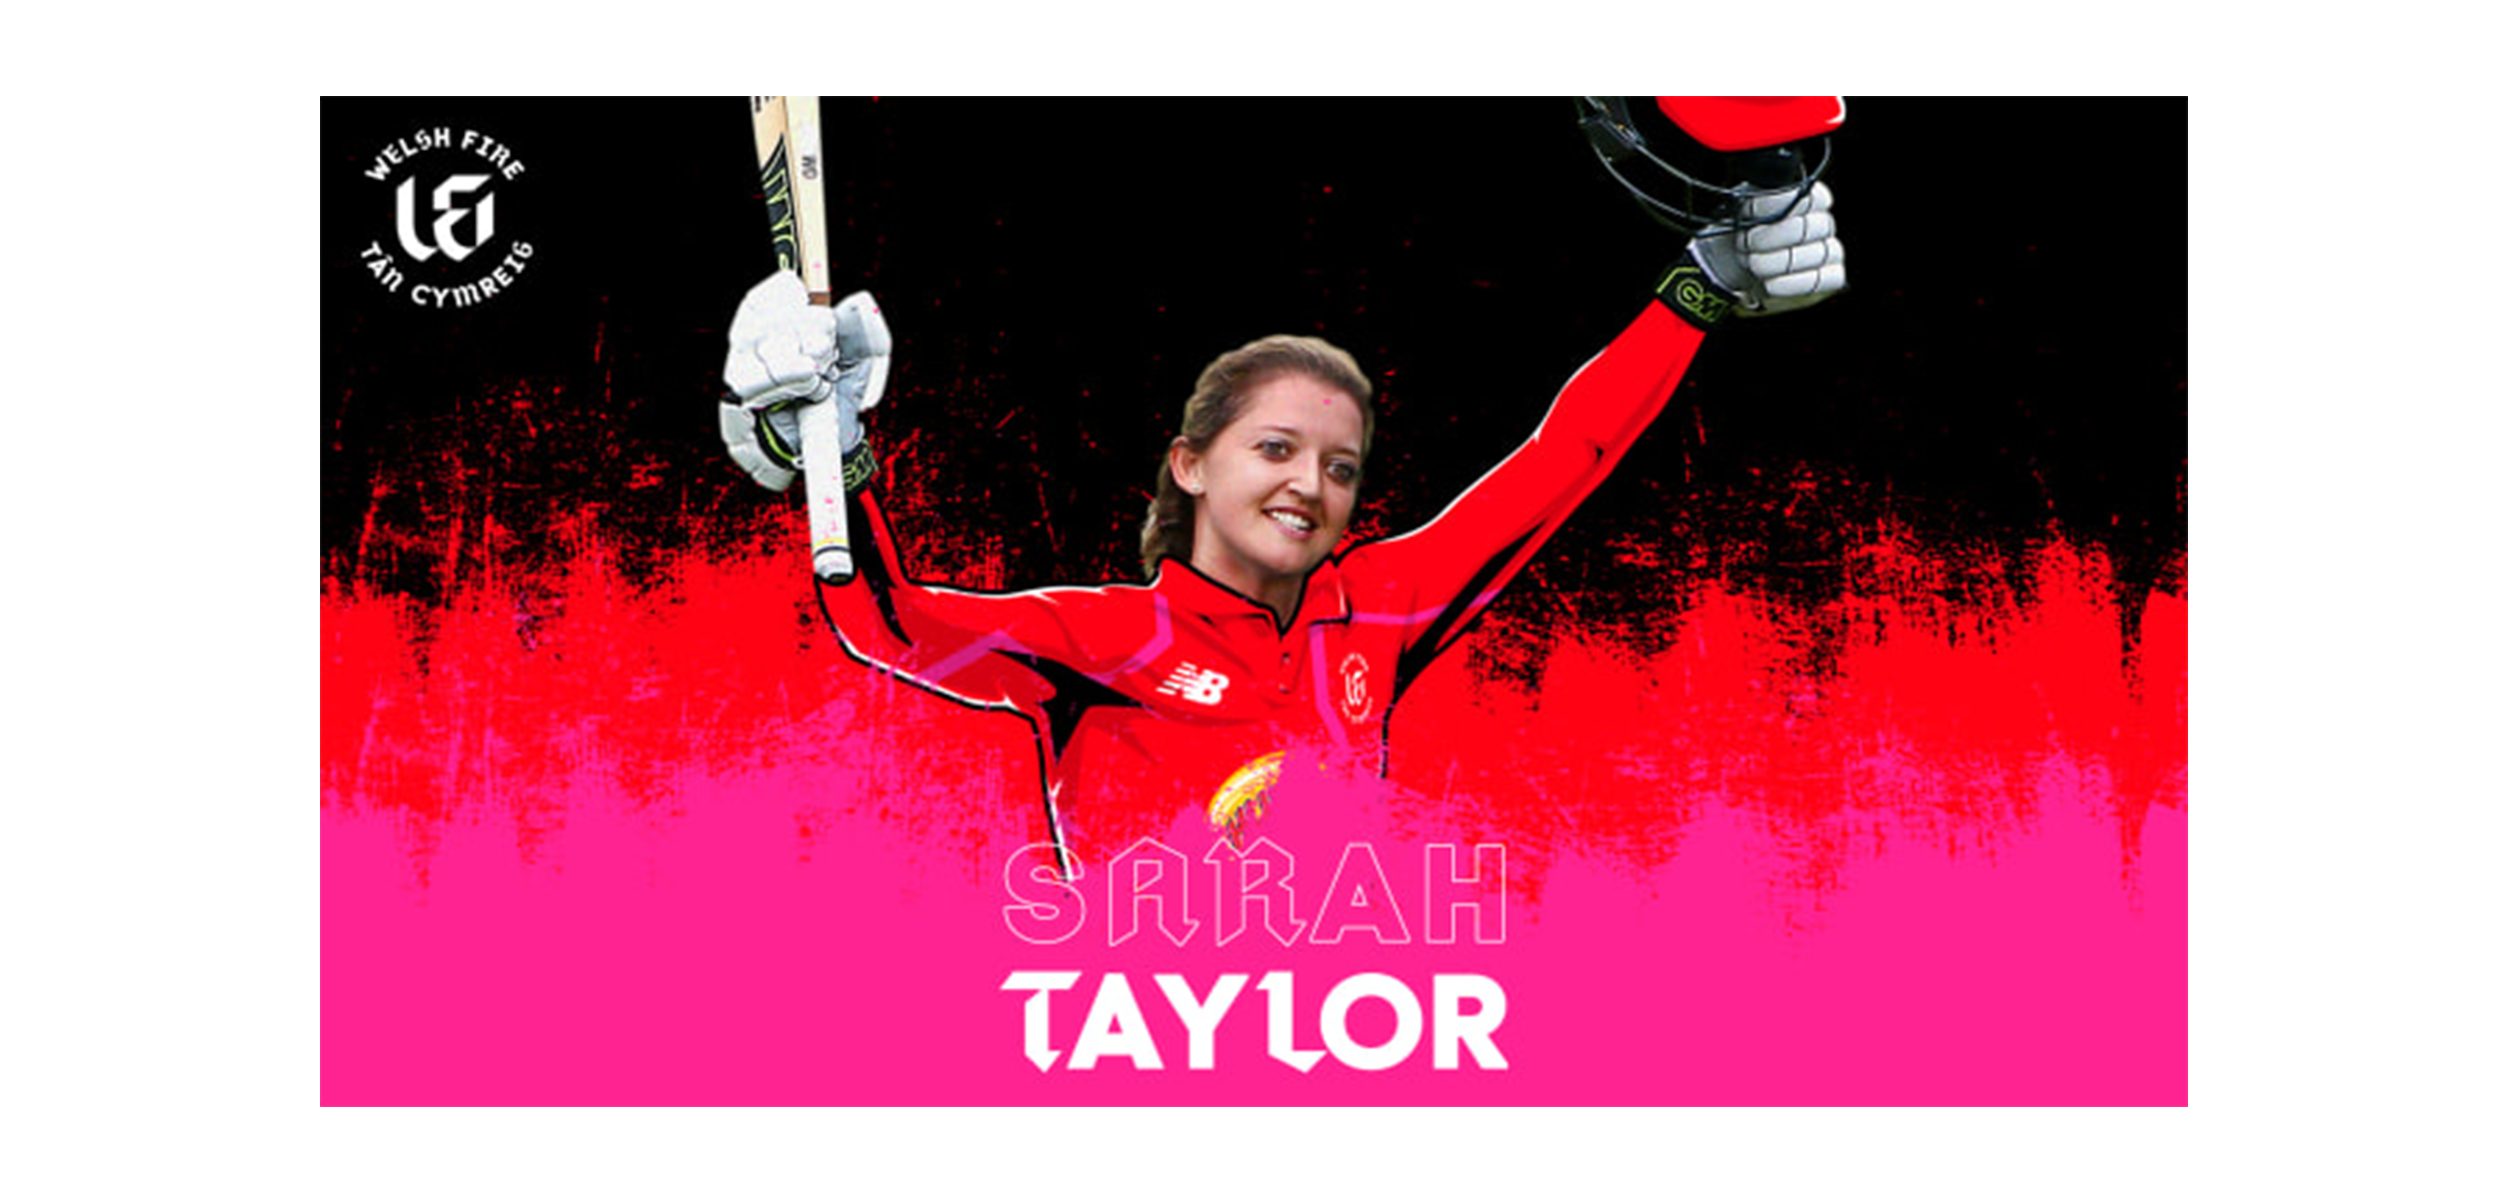 ECB: Sarah Taylor signs up for The Hundred